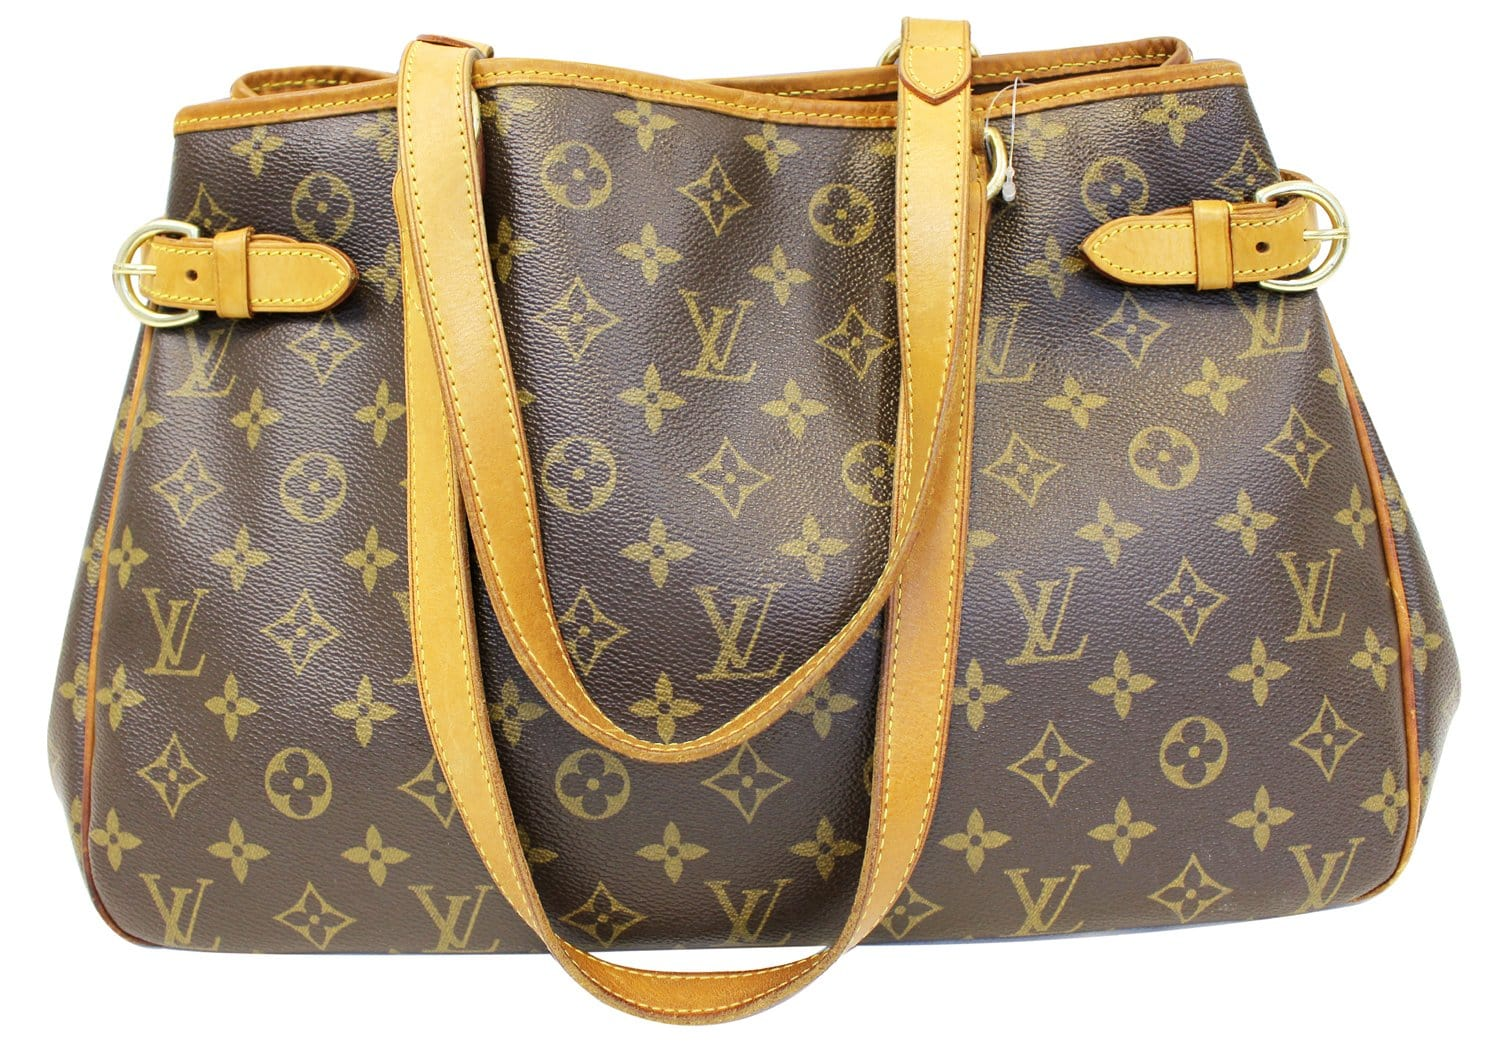 ce4b7f0220e6 LOUIS VUITTON Used Shoulder Bag Monogram Canvas Batignolles ...